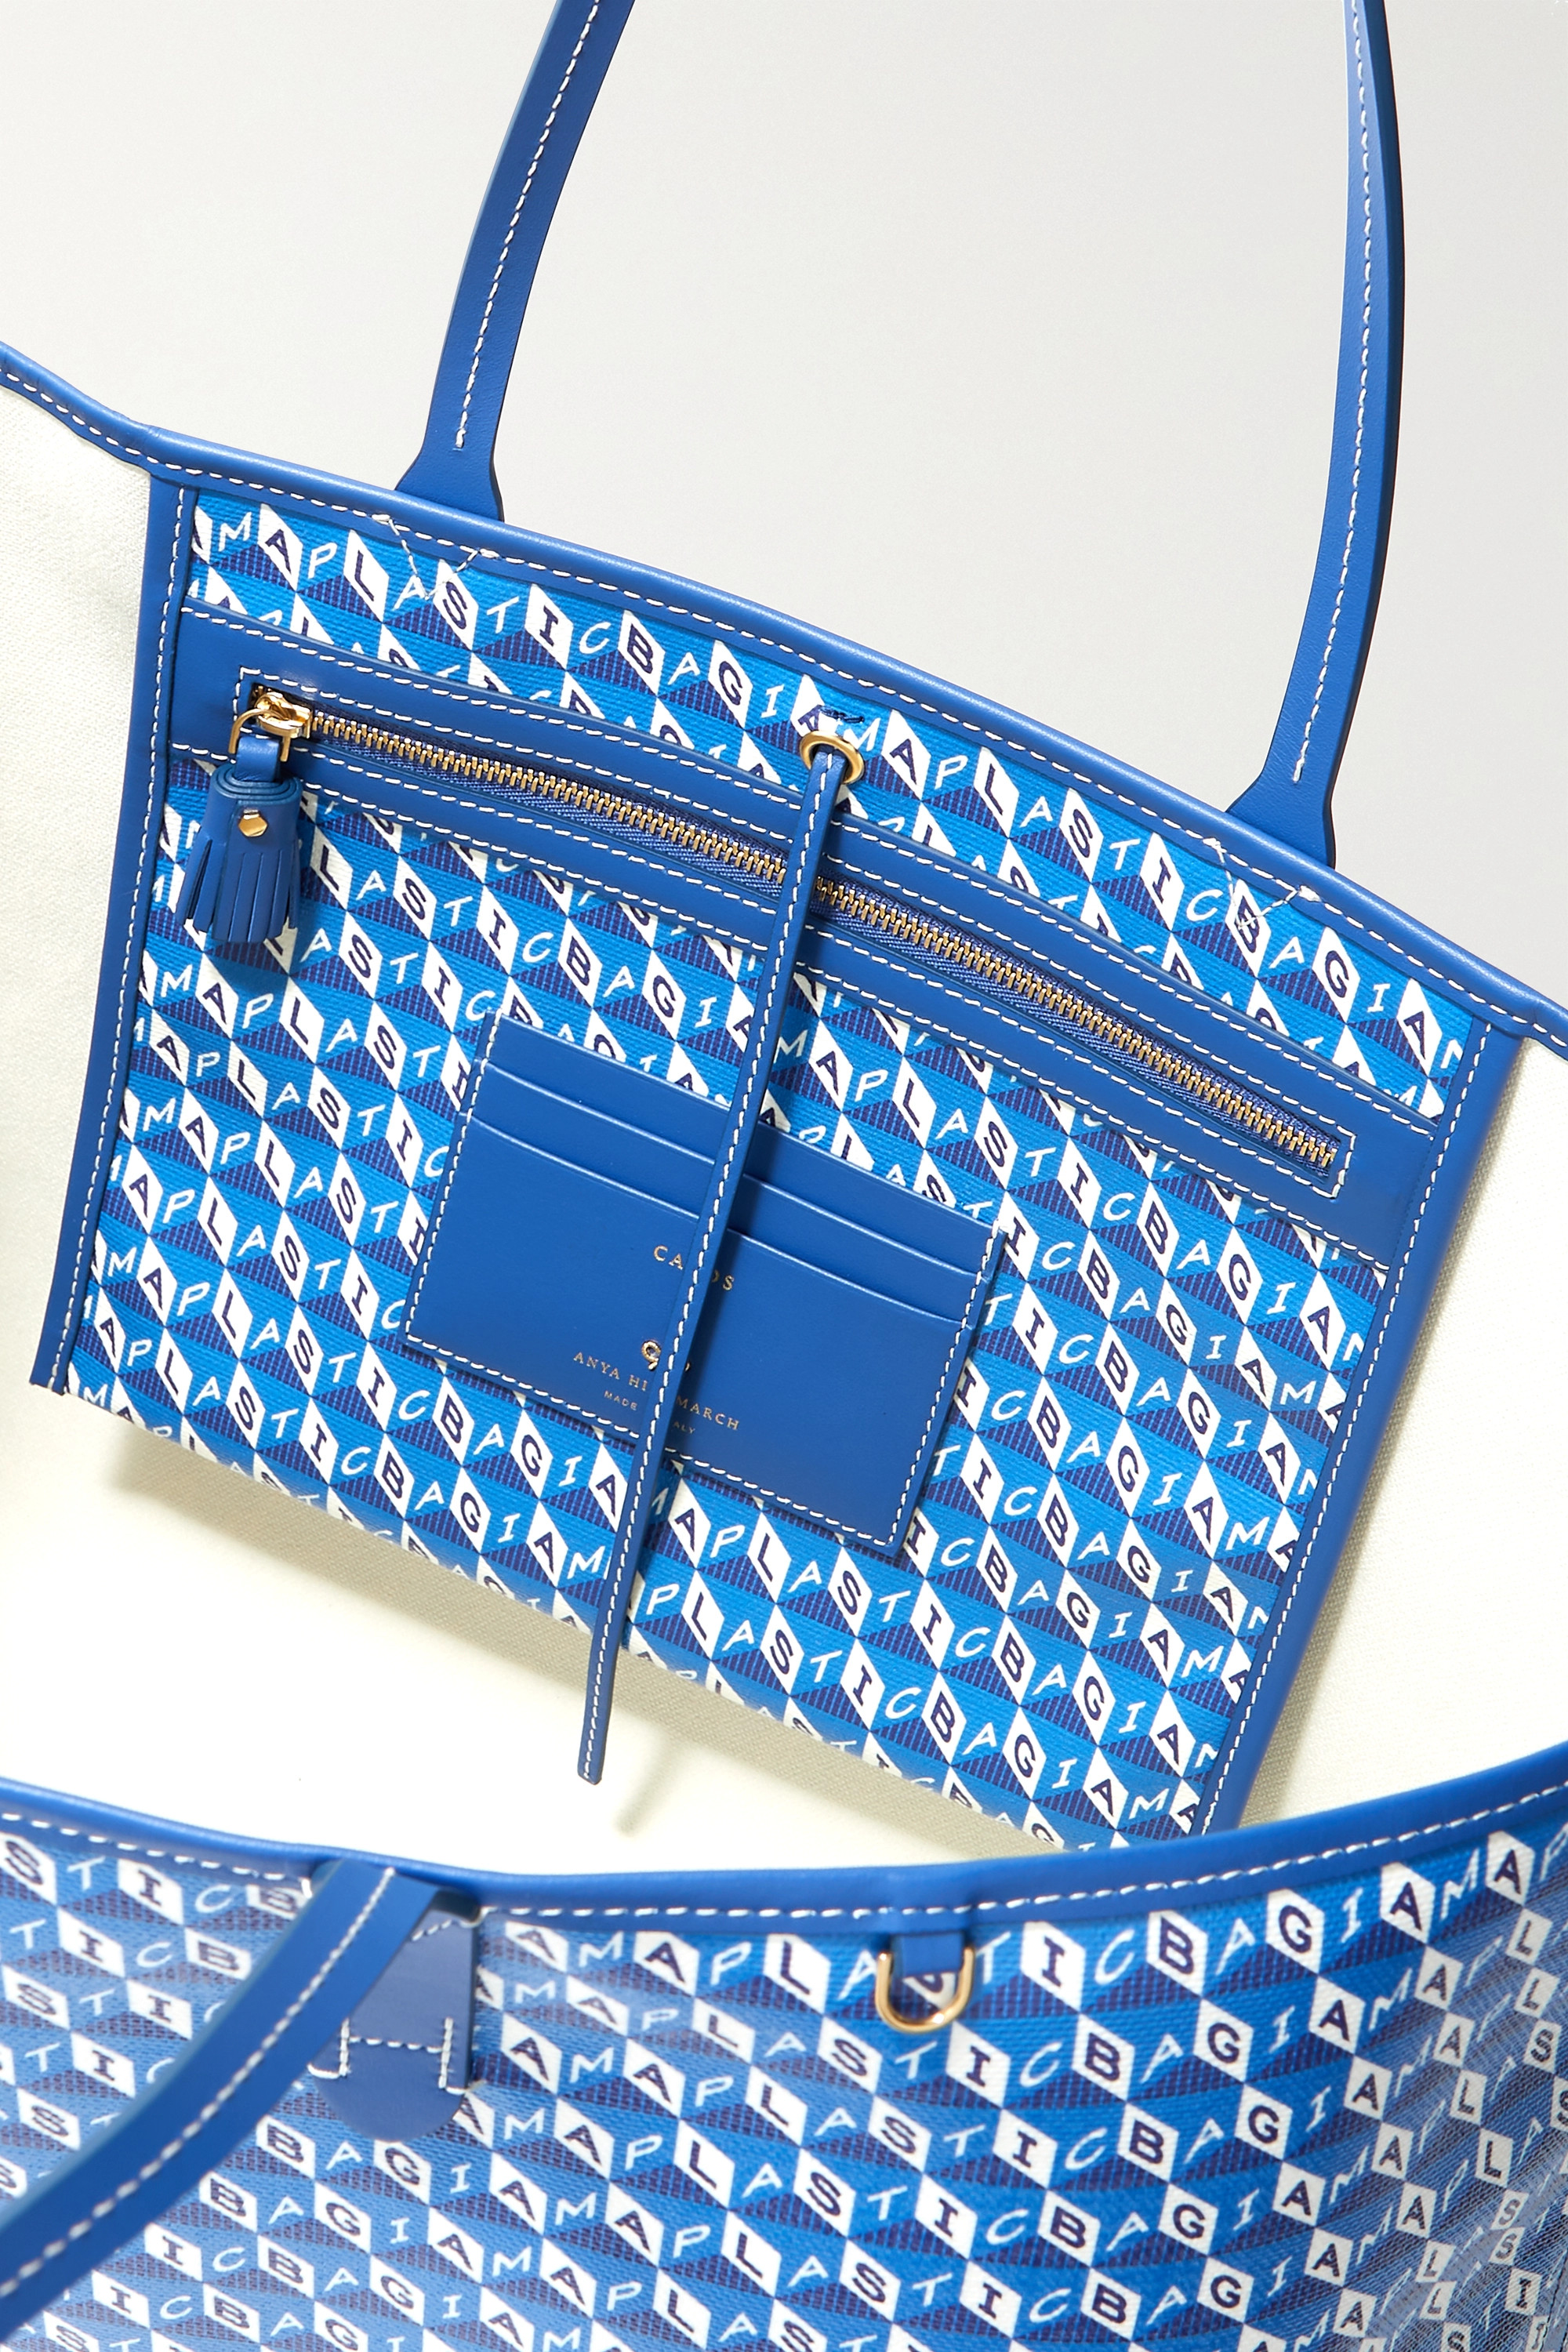 Anya Hindmarch I Am A Plastic Bag leather-trimmed printed coated-canvas tote